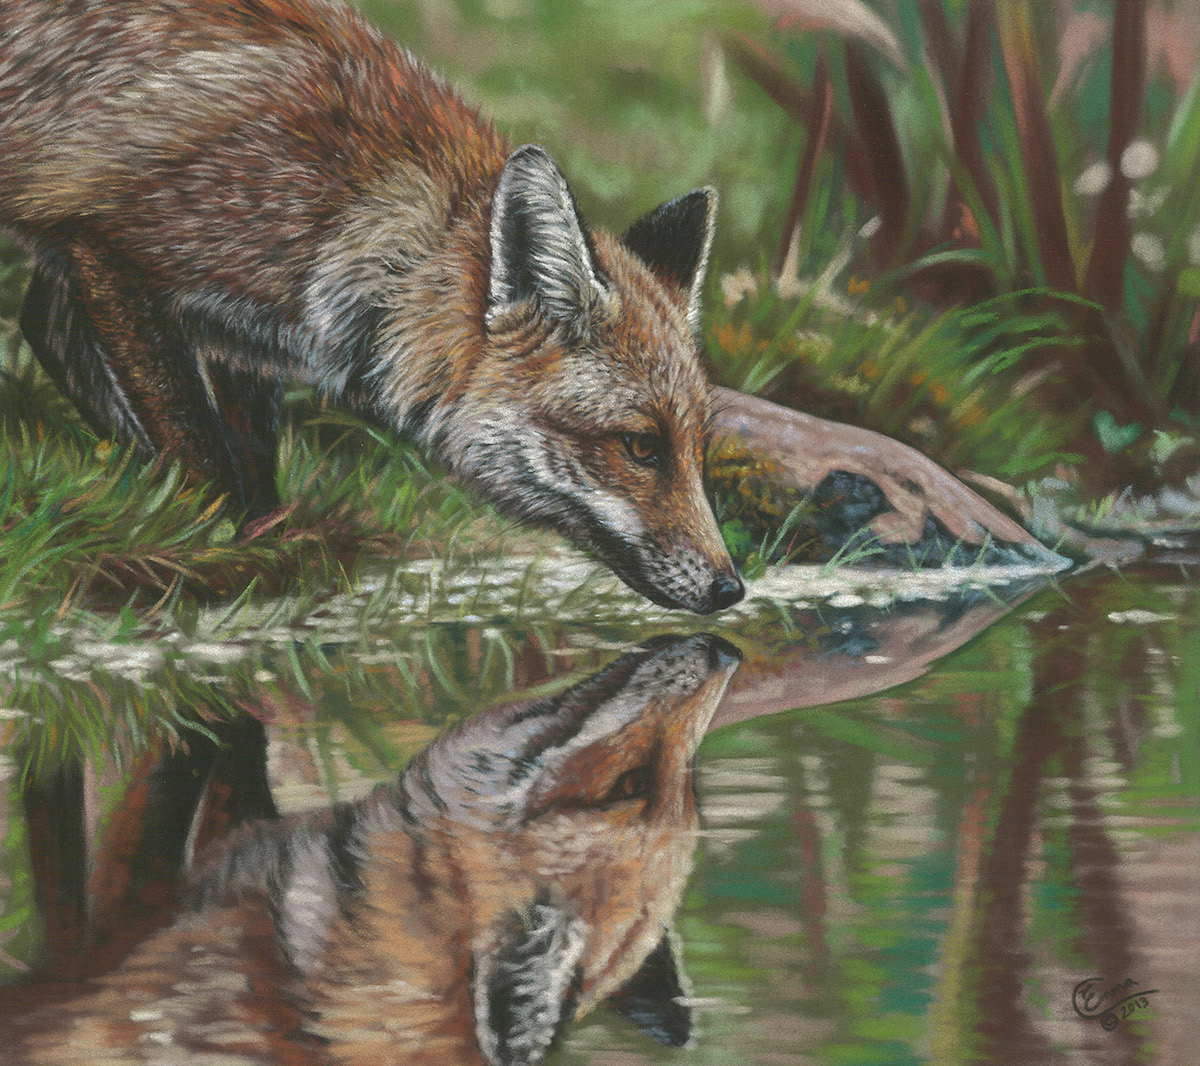 "Emma Colbert, ""Water's Edge,"" 2013, Unison pastels on Hahnemühle velour paper, 18 x 14 in. Sold. One of my favourite fox paintings and an early experiment with loosening up in water reflections."